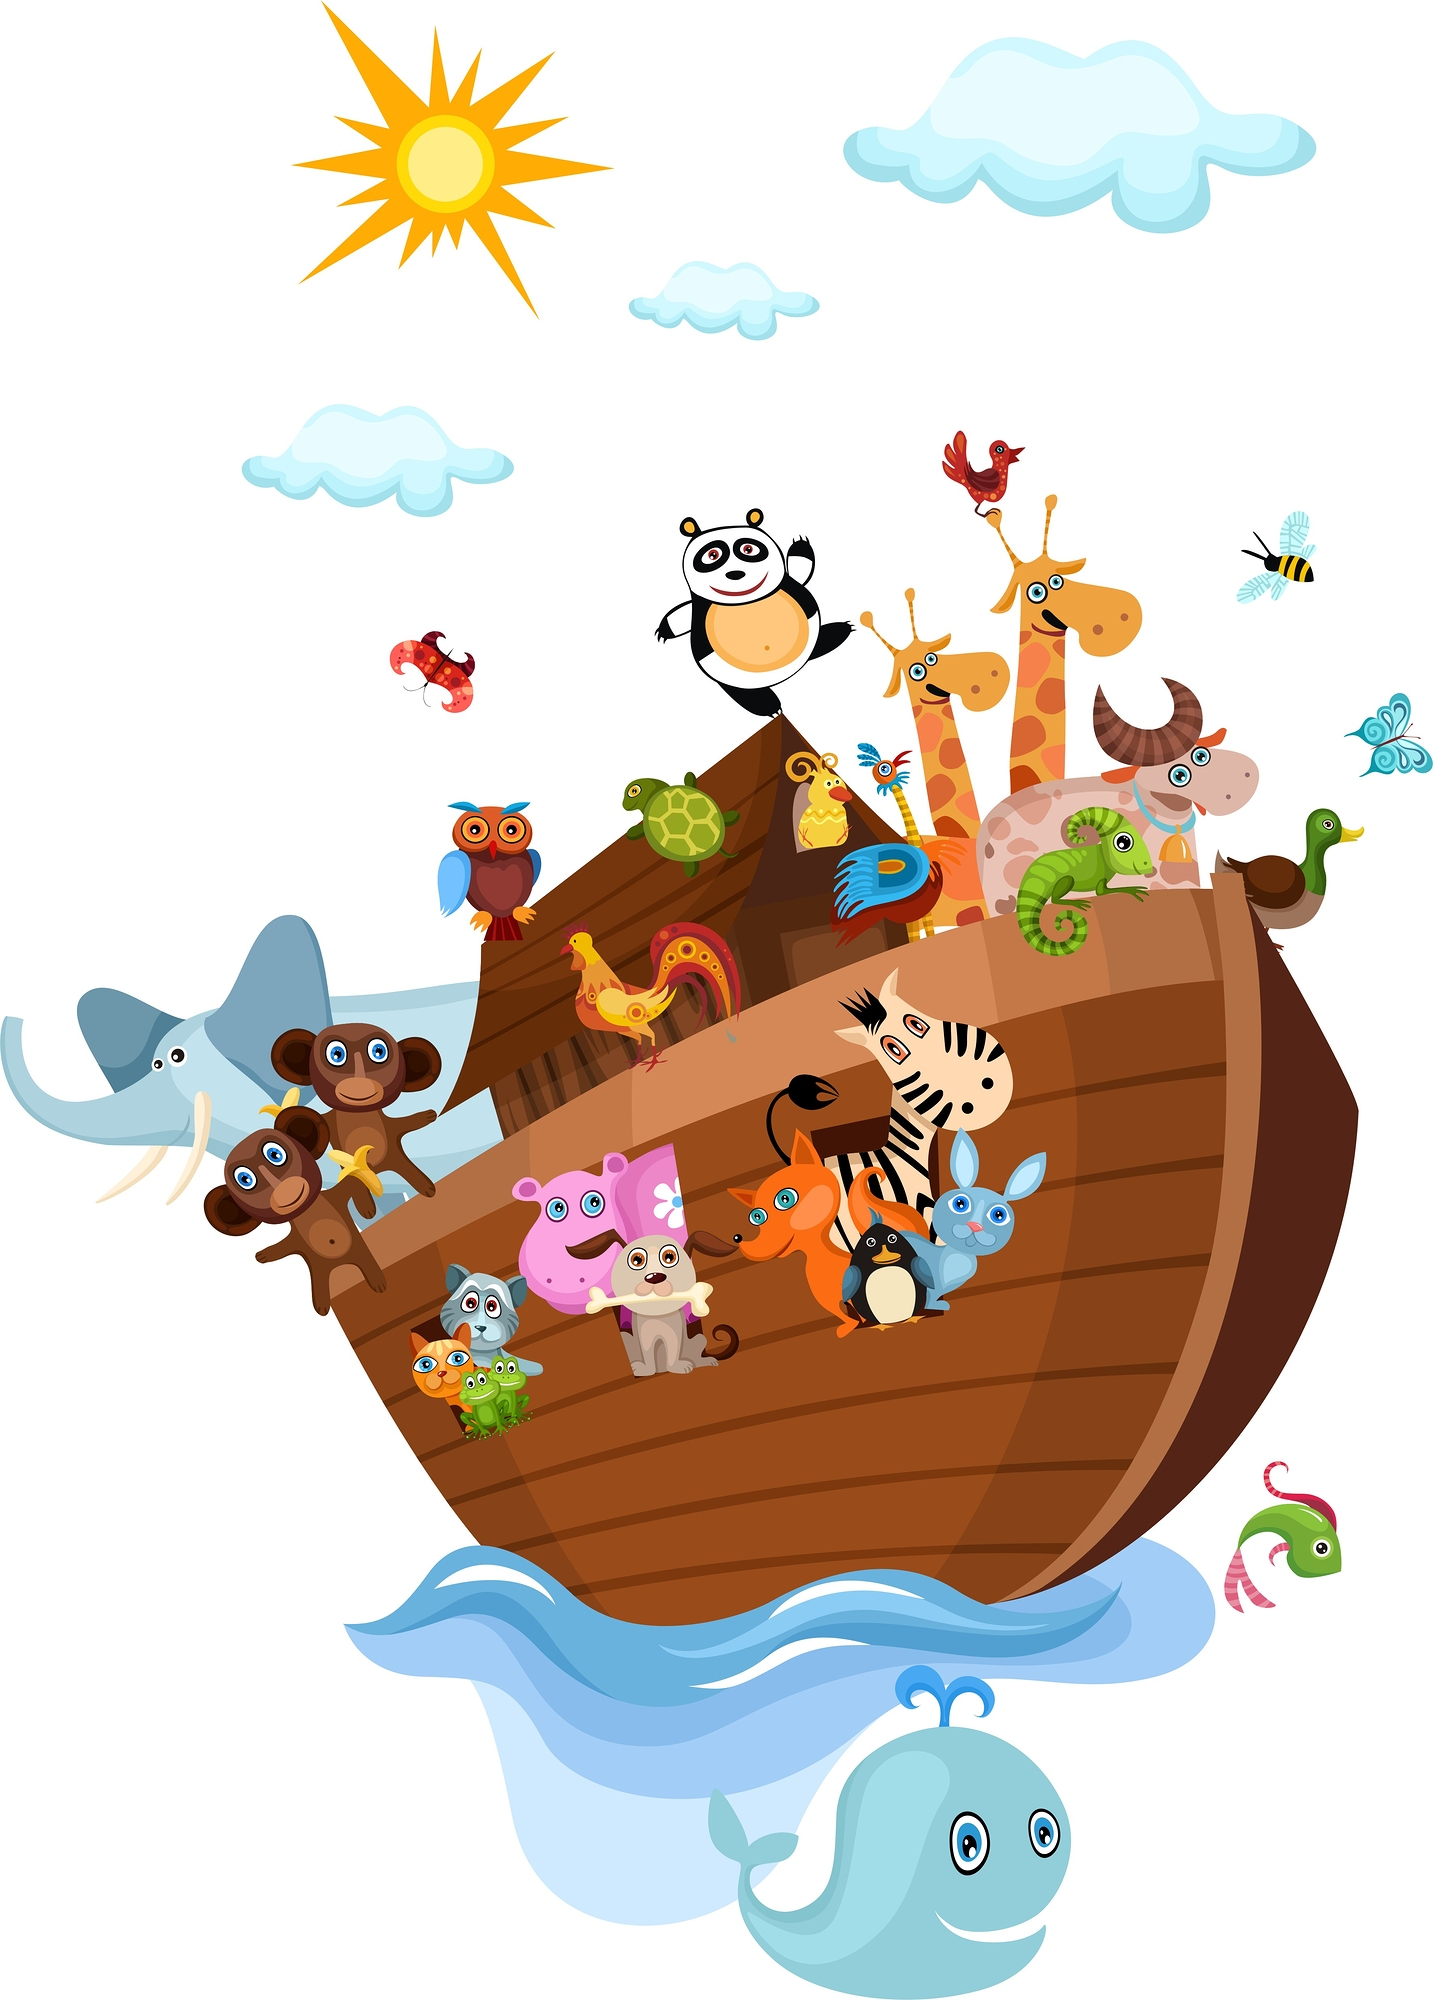 illustration of a Noah's Ark with cute animals